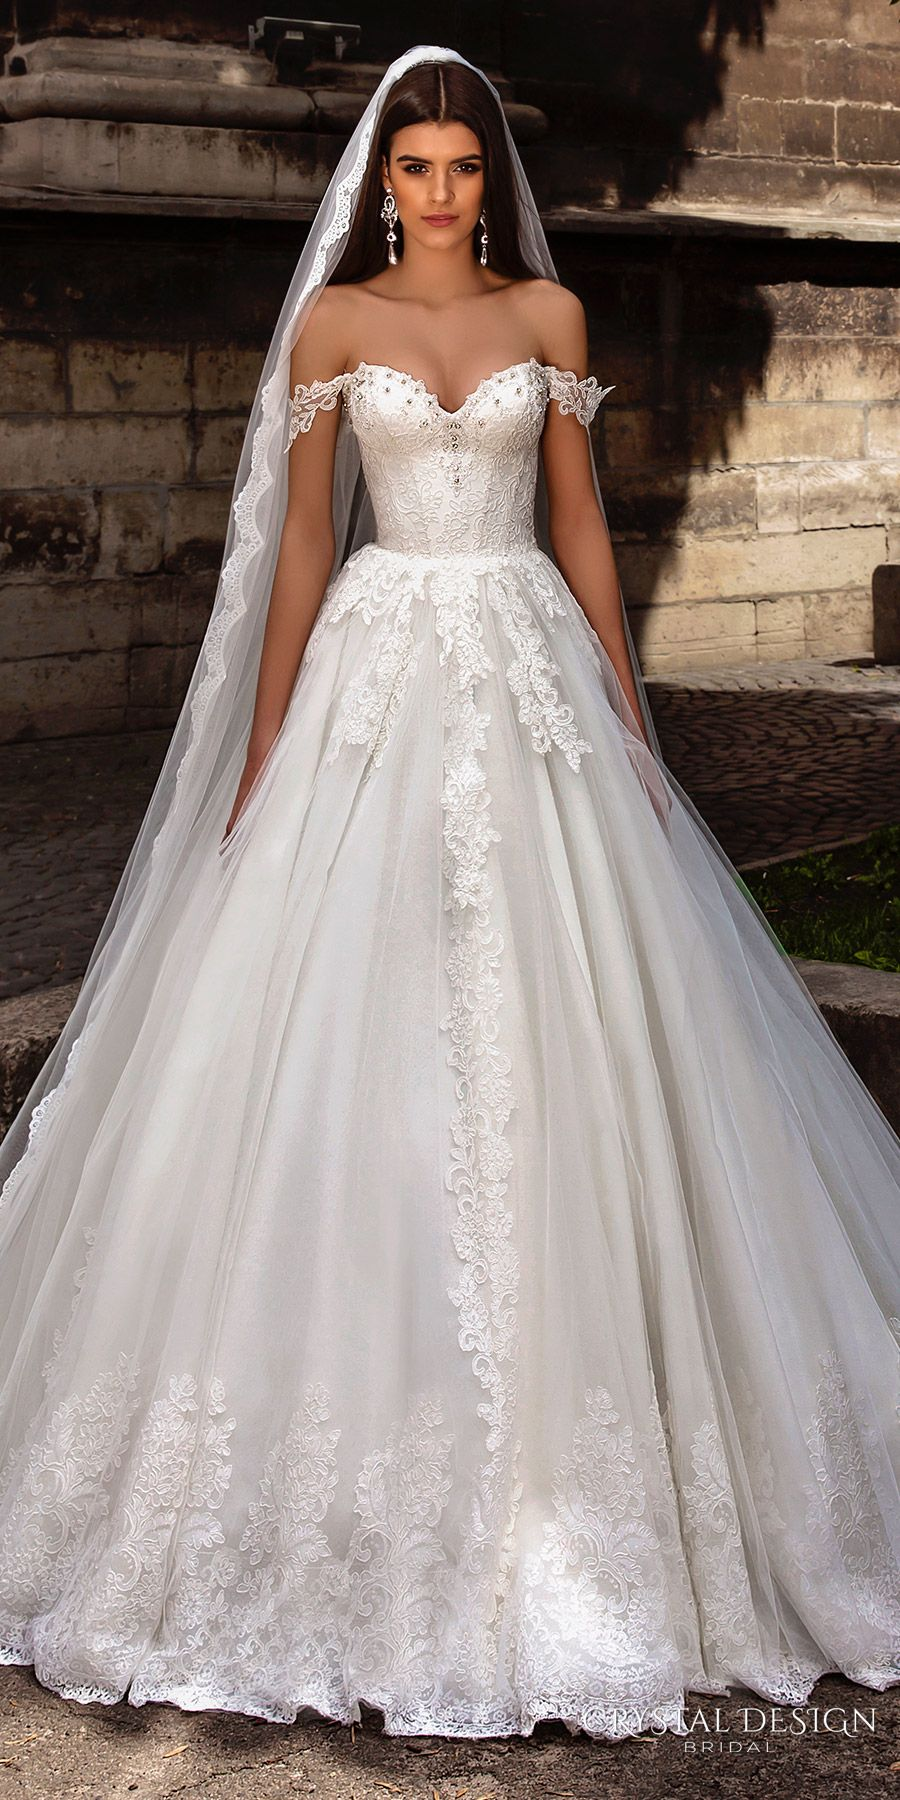 Crystal Design 2016 Wedding Dresses Wedding Dresses Dream